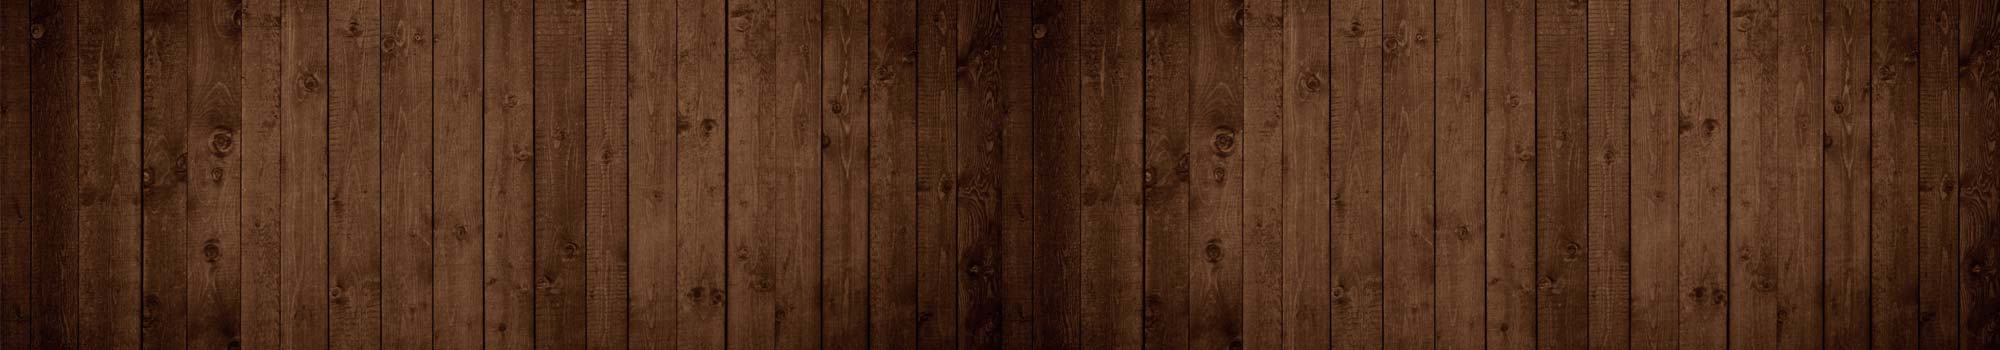 new_woodbackground